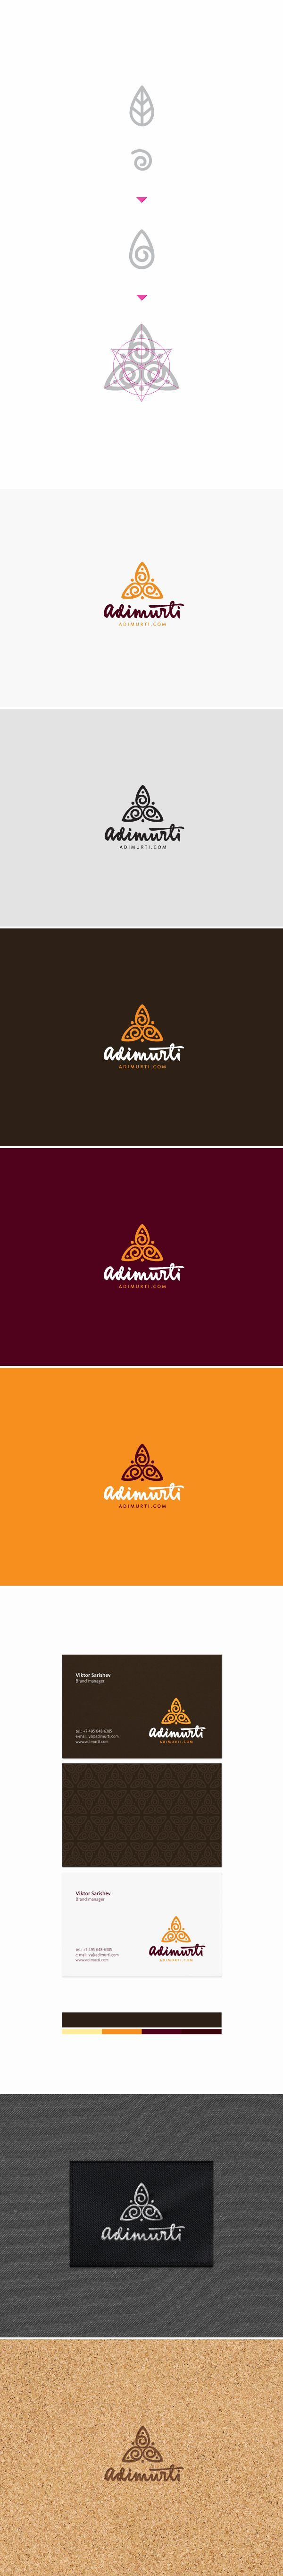 Adimurti on the Behance Network#logo #design #branding #identity #inspiration #brand #idea #modern #creative #simple